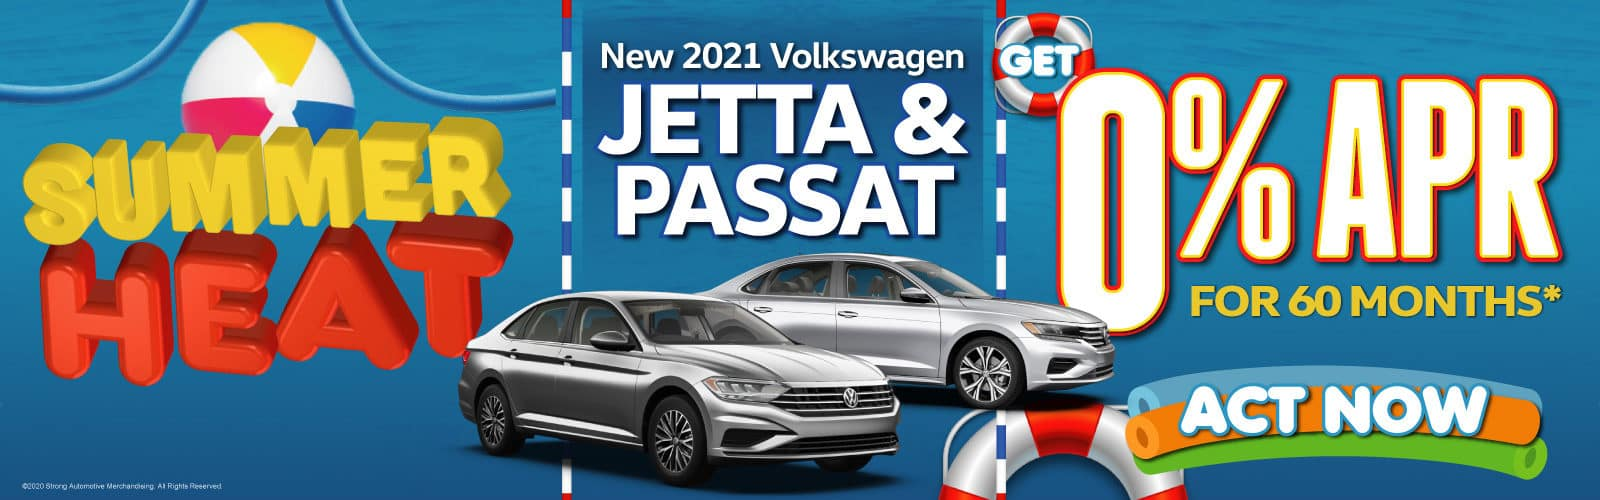 New 2021 VW Jetta and Passat - 0% APR for 60 months